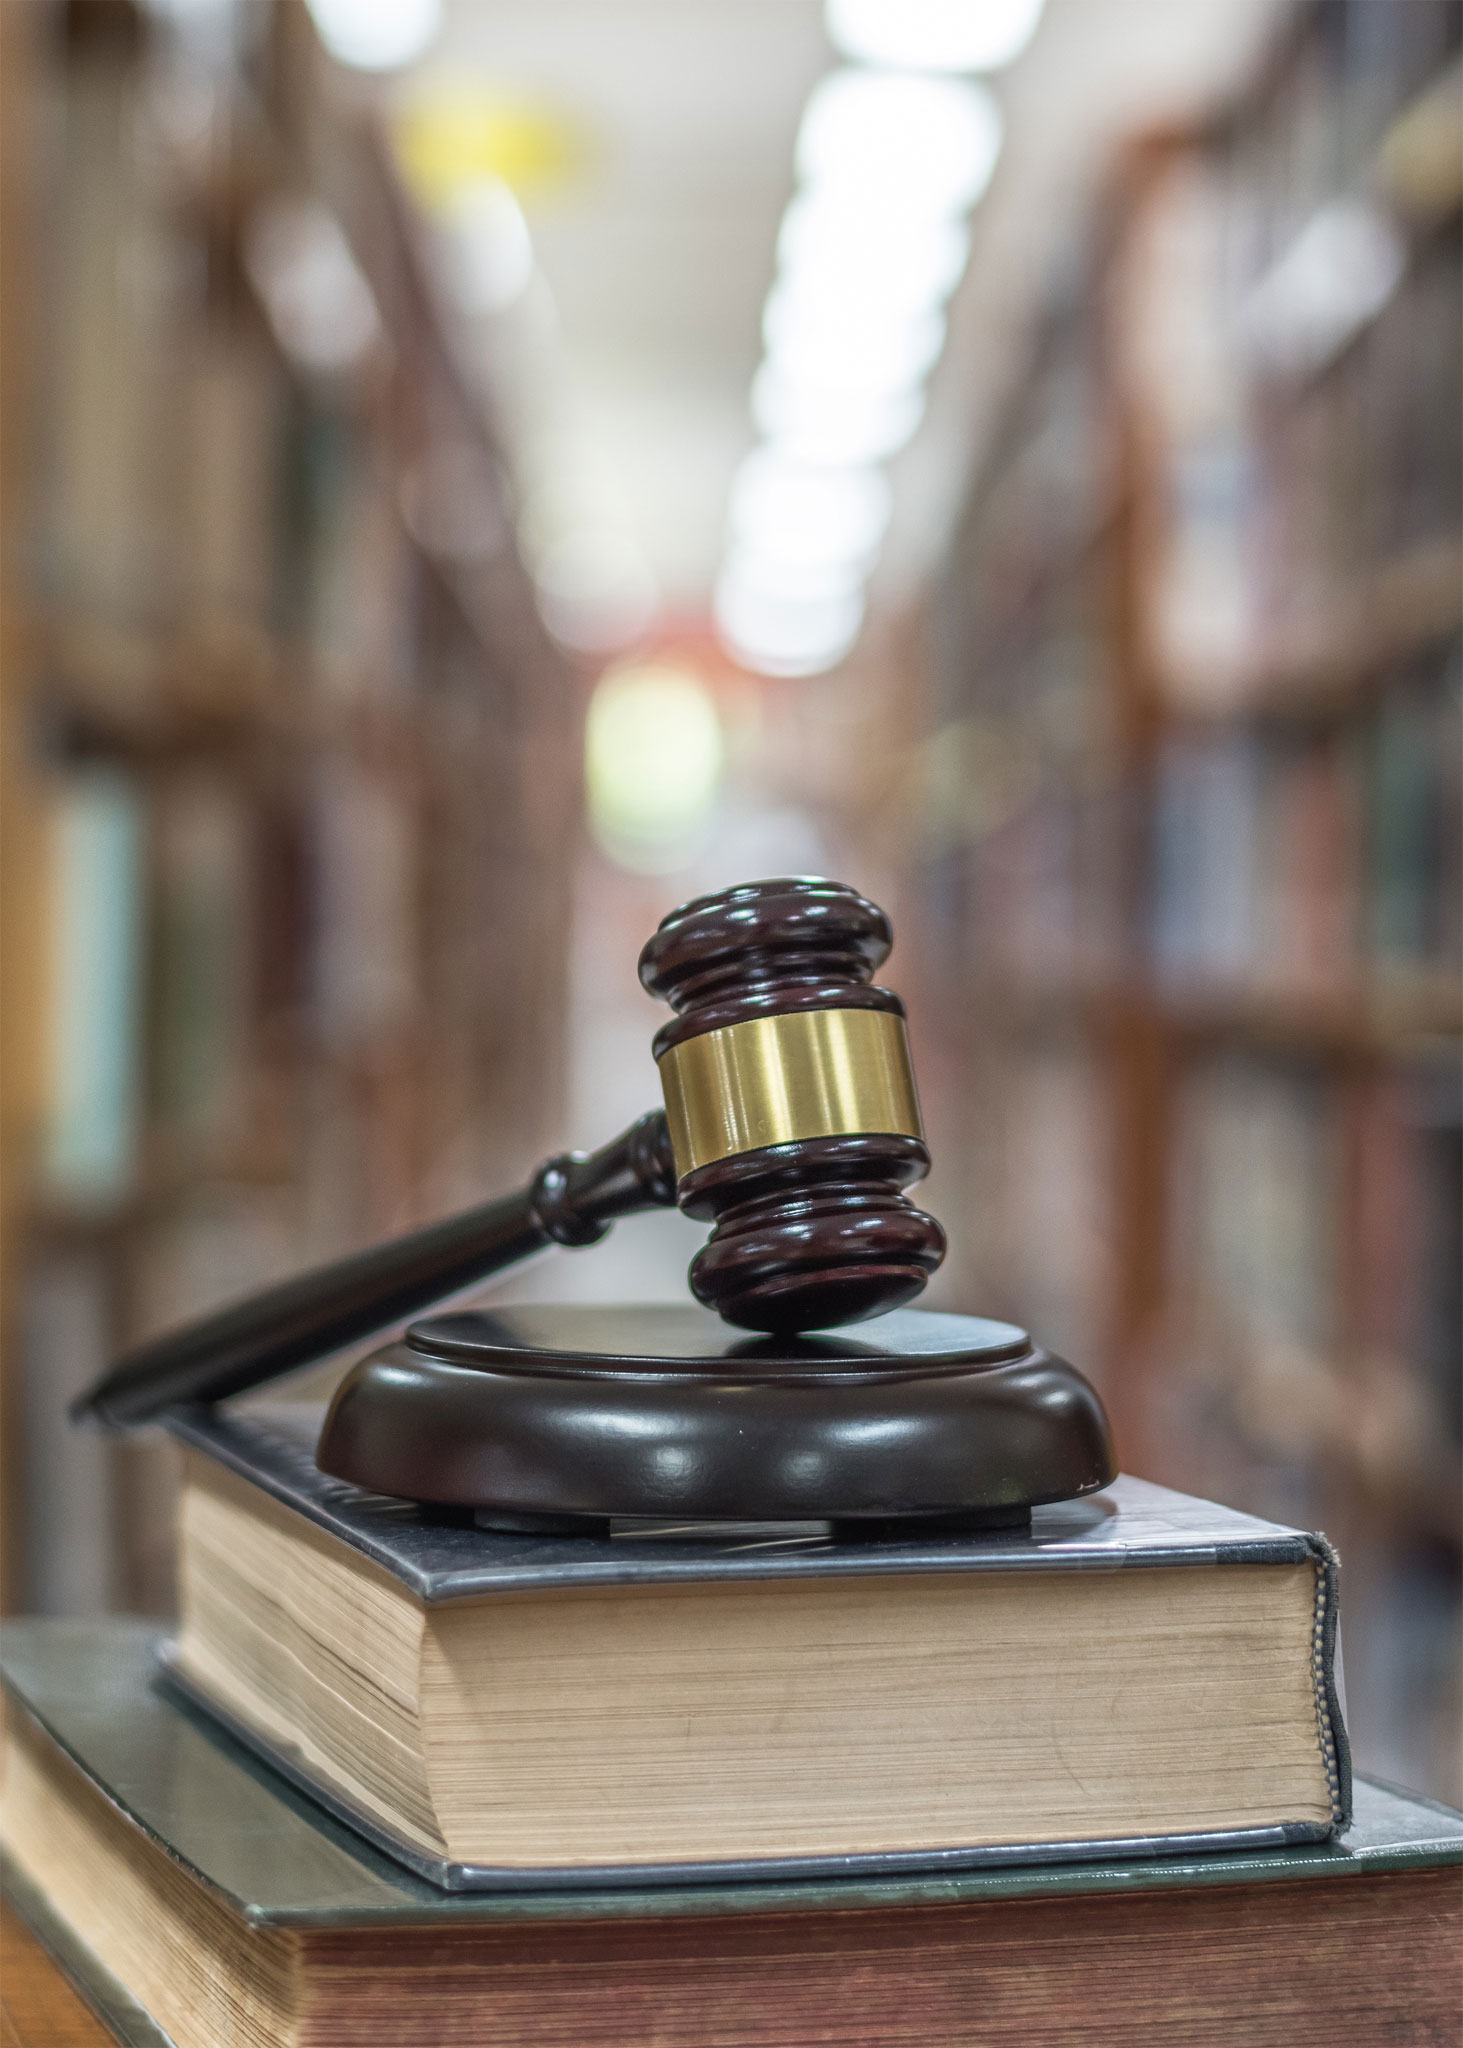 Gavel on a stack of books